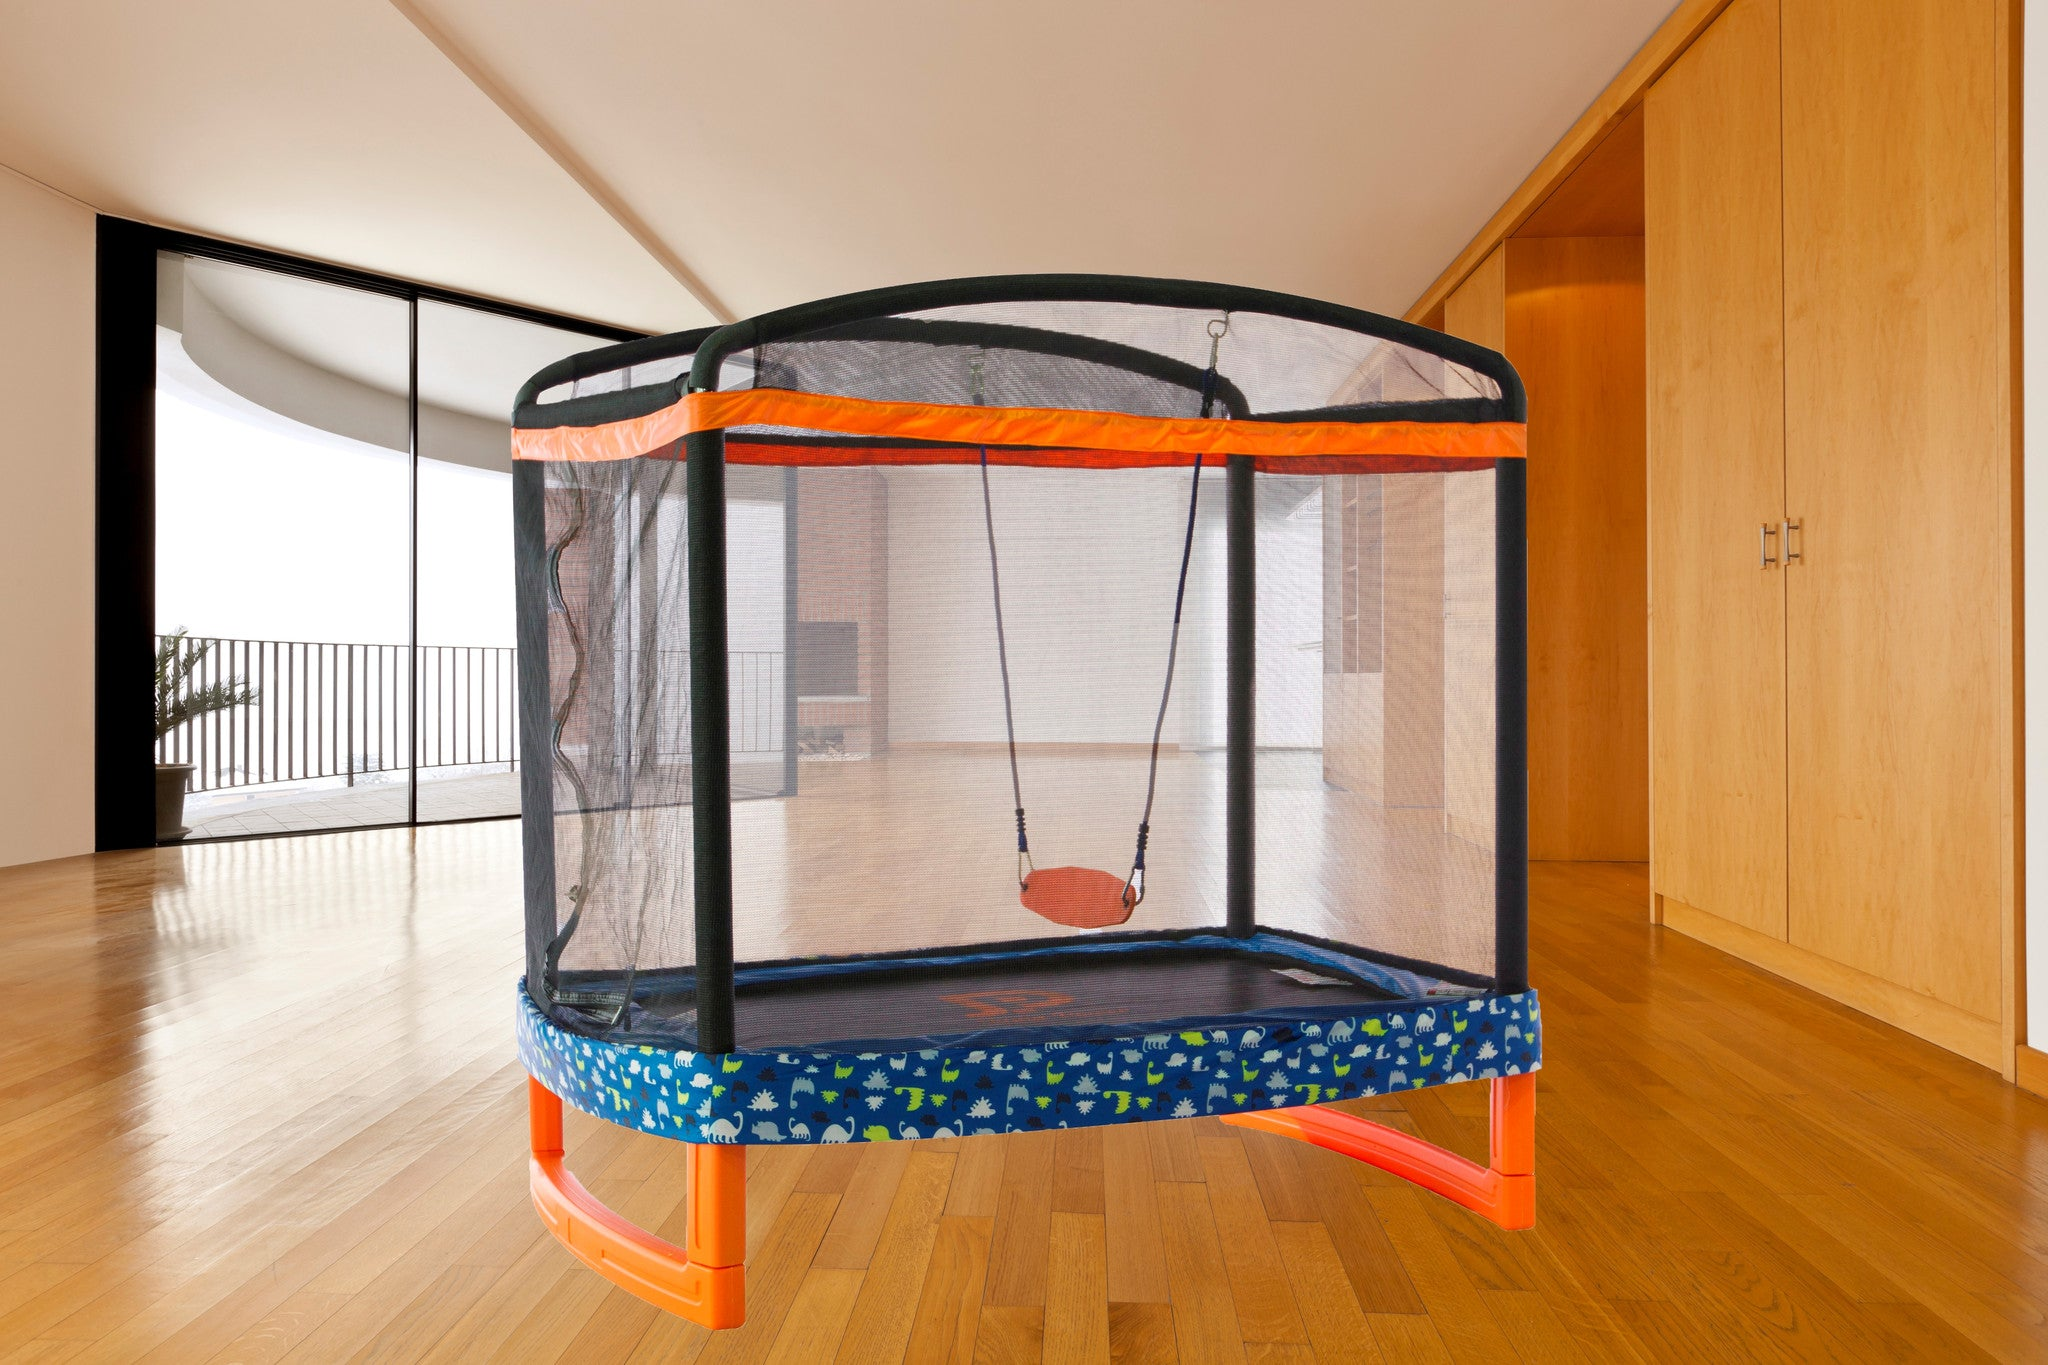 "72"" x 50"" Rectangular Indoor/Outdoor Trampoline Combo"